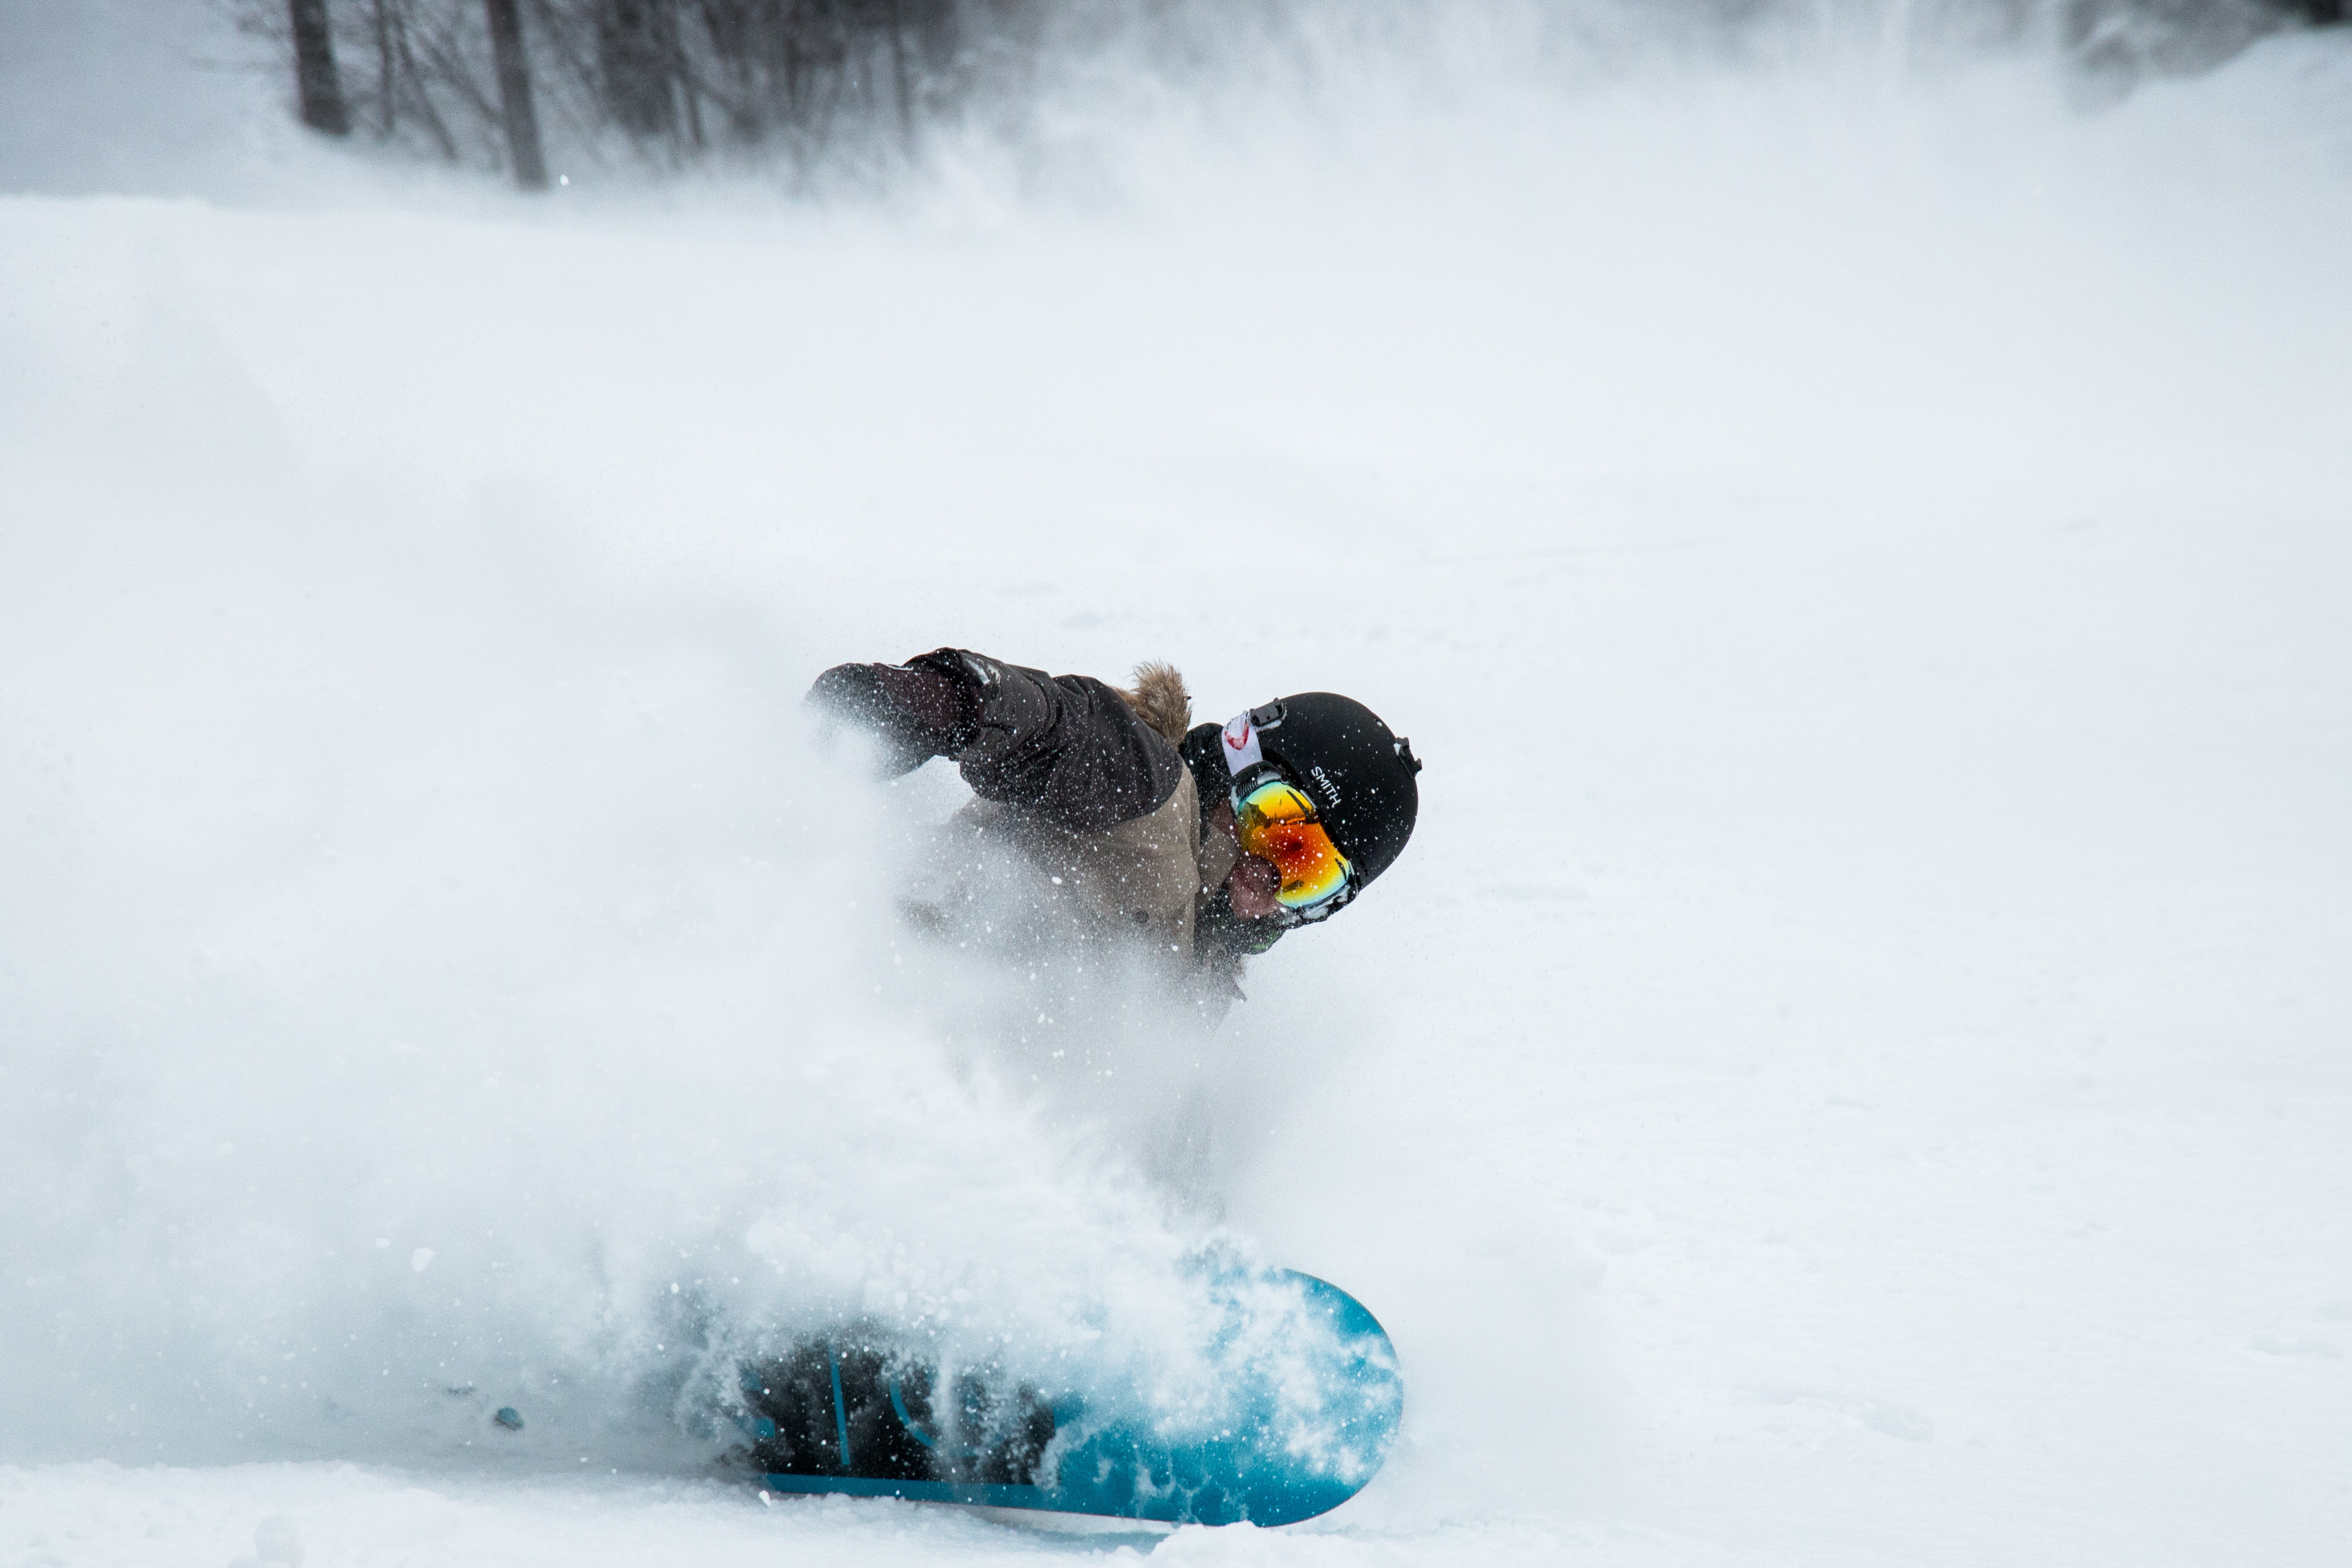 122885 download wallpaper Sports, Snowboard, Snowboarder, Snow, Helmet, Glasses, Spectacles screensavers and pictures for free